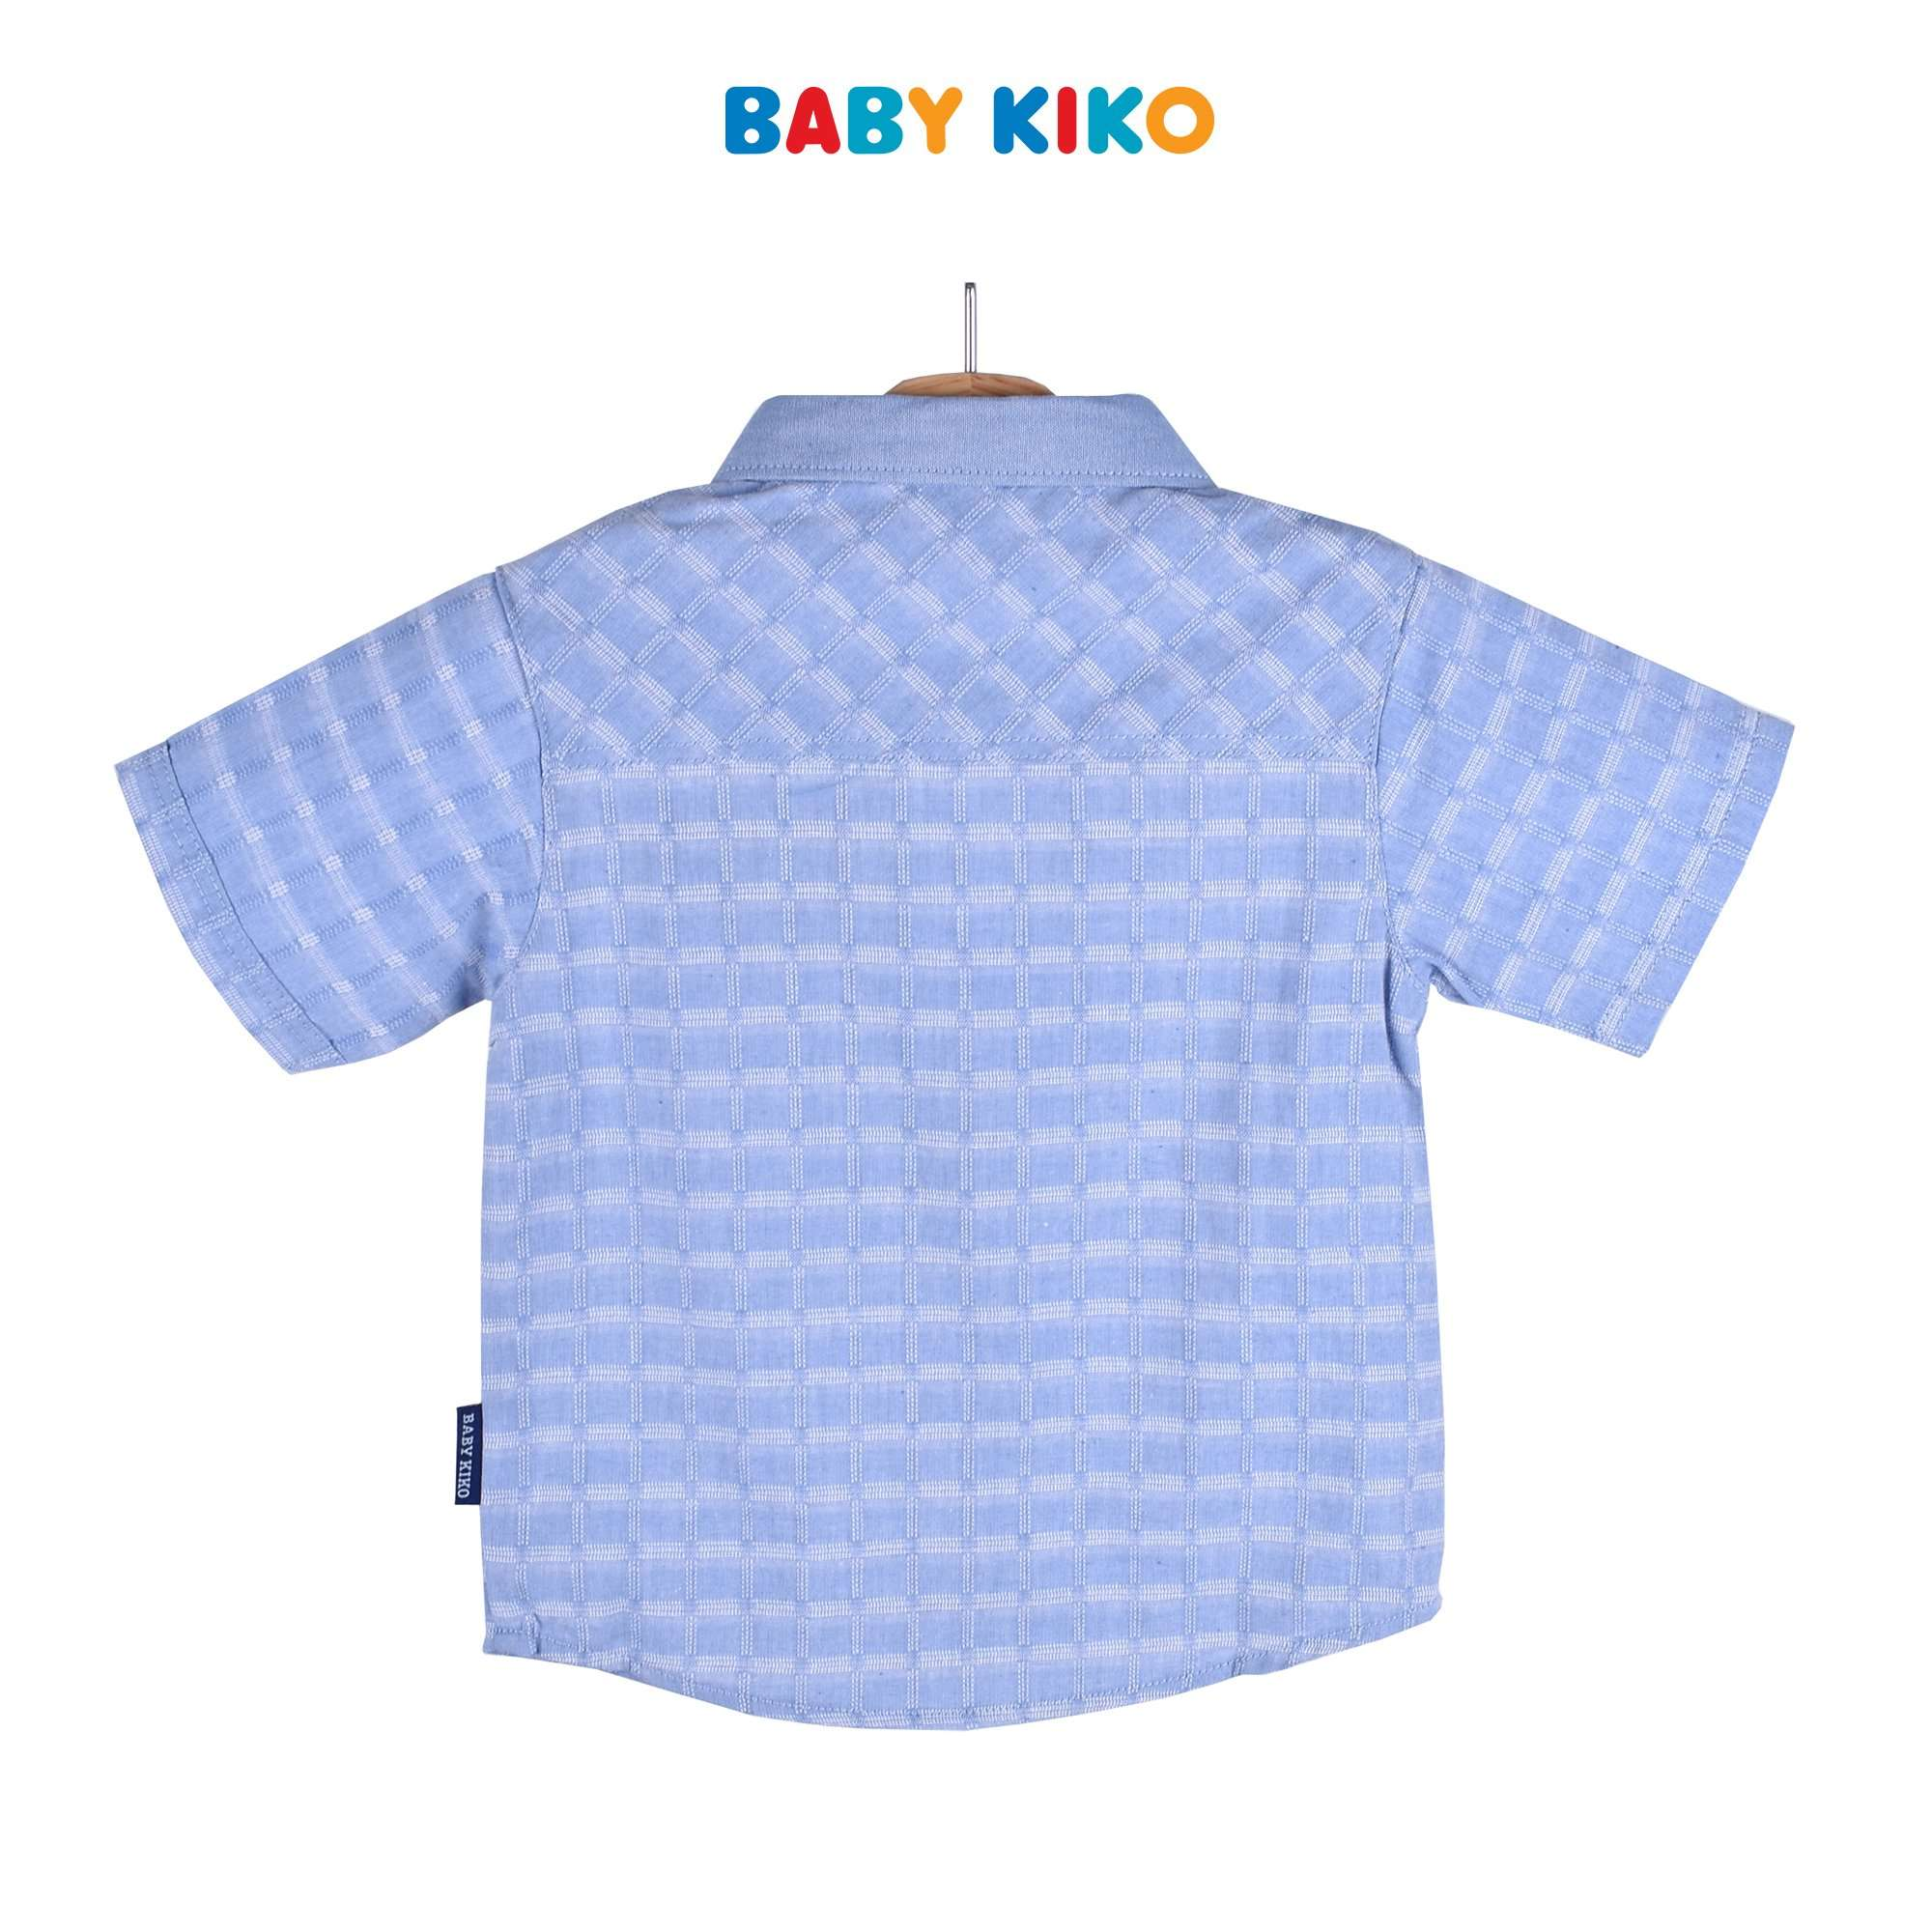 Baby KIKO Toddler Boy Short Sleeve Dress Navy Woven 315122-141 : Buy Baby KIKO online at CMG.MY